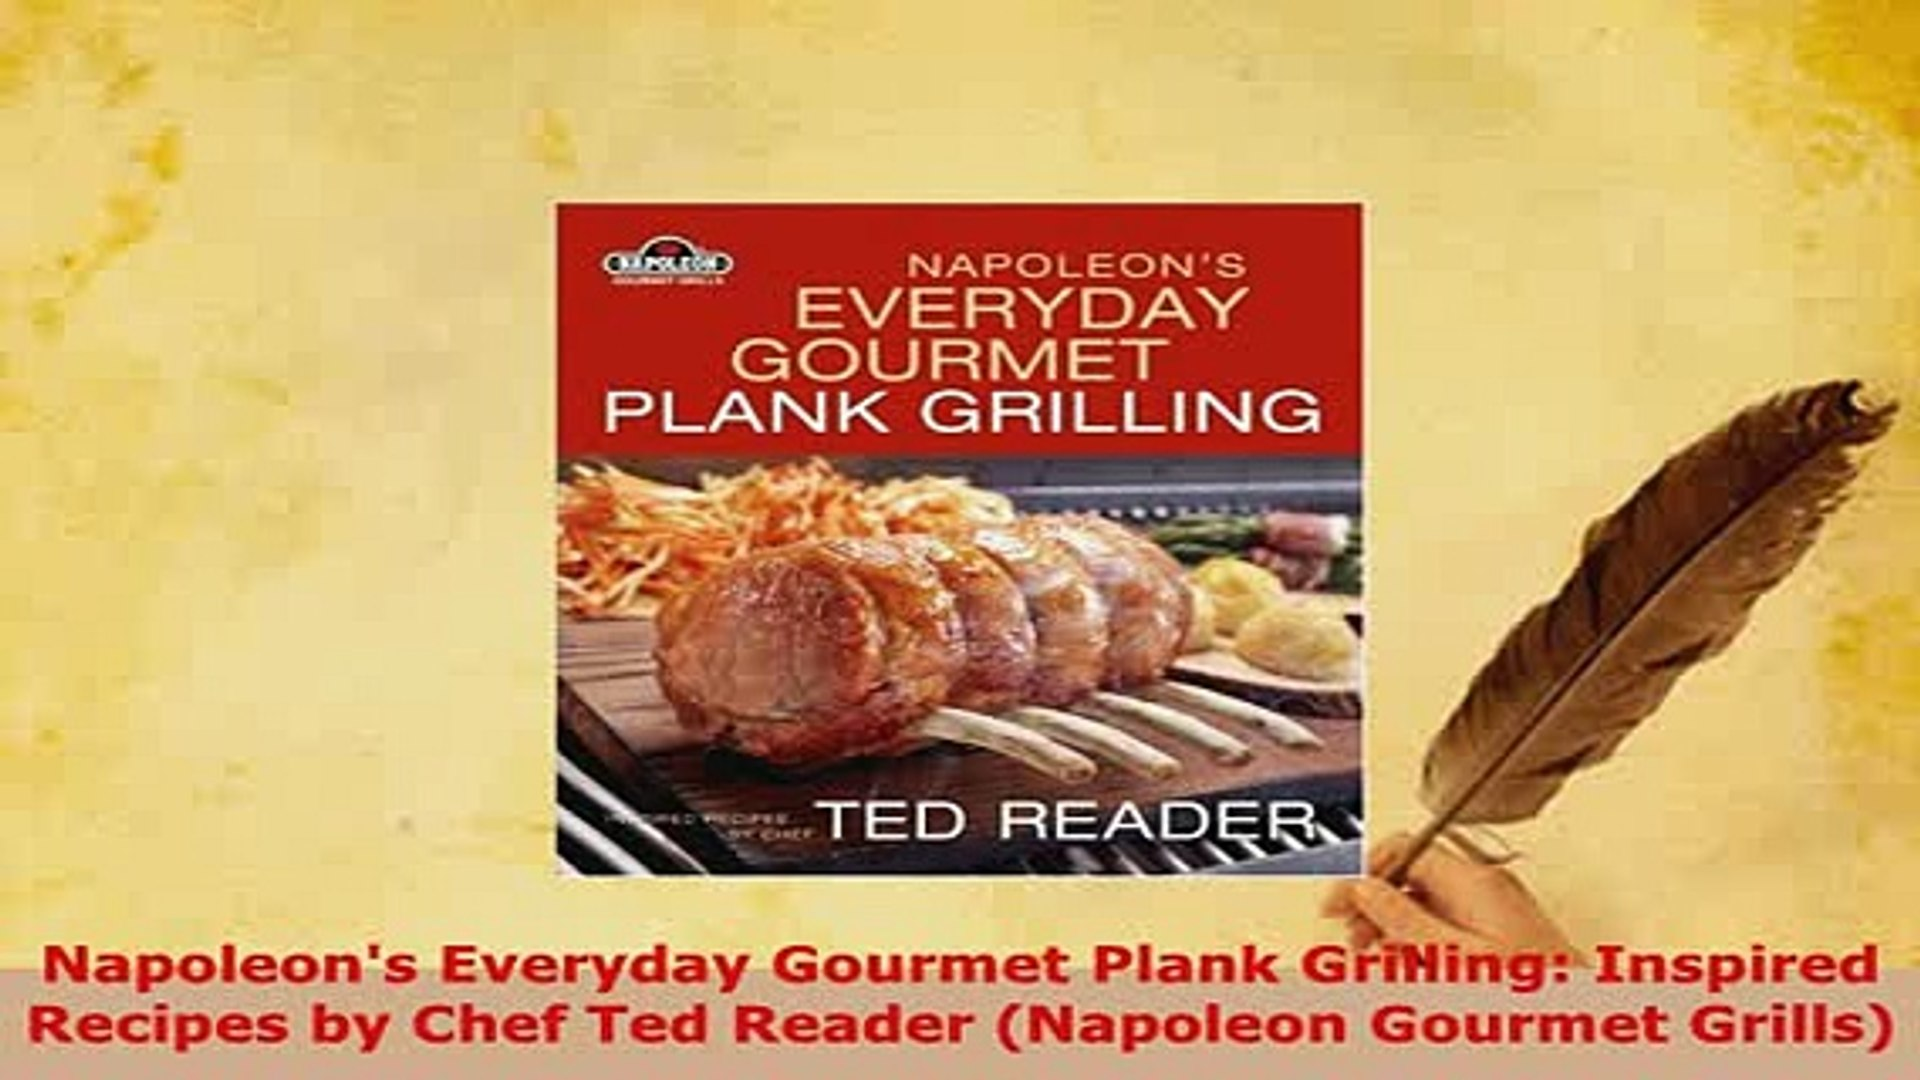 Download  Napoleons Everyday Gourmet Plank Grilling Inspired Recipes by Chef Ted Reader Napoleon Dow